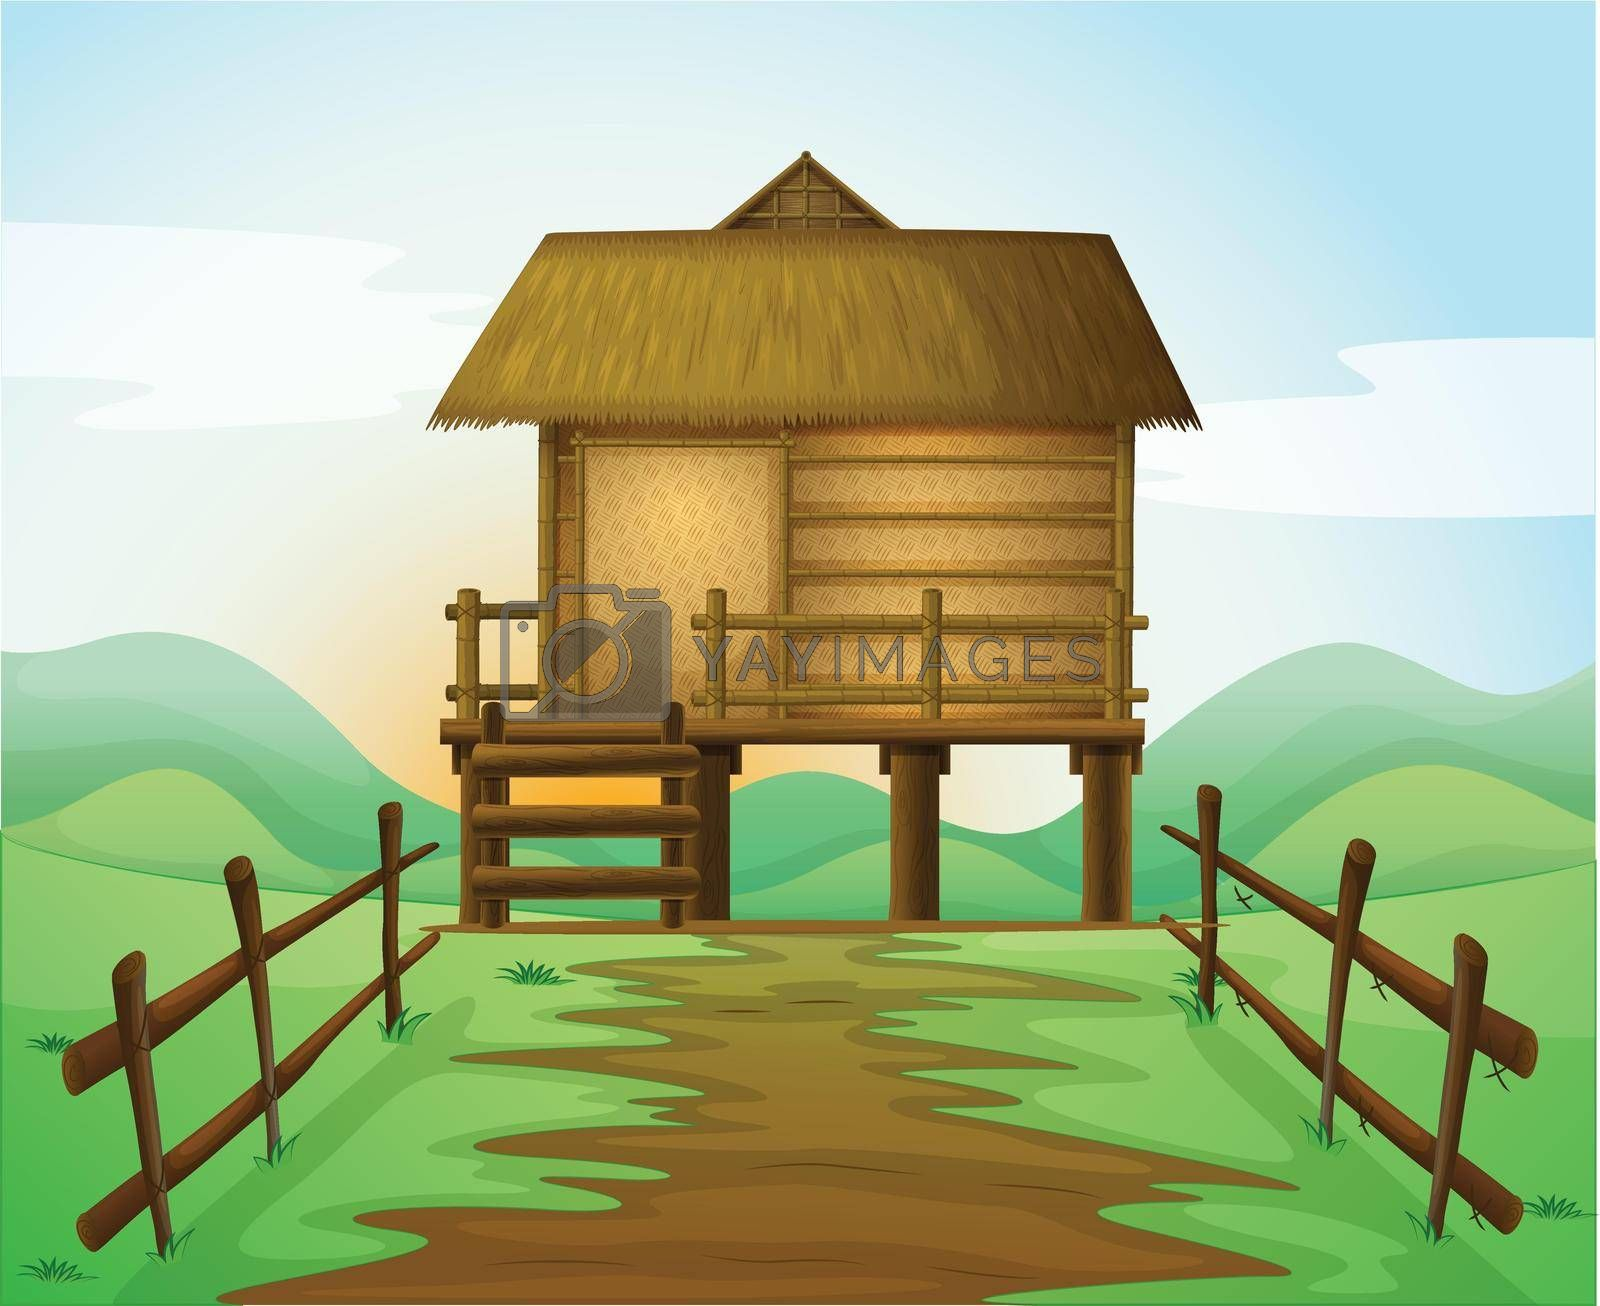 illustration of a hut in a beautiful nature